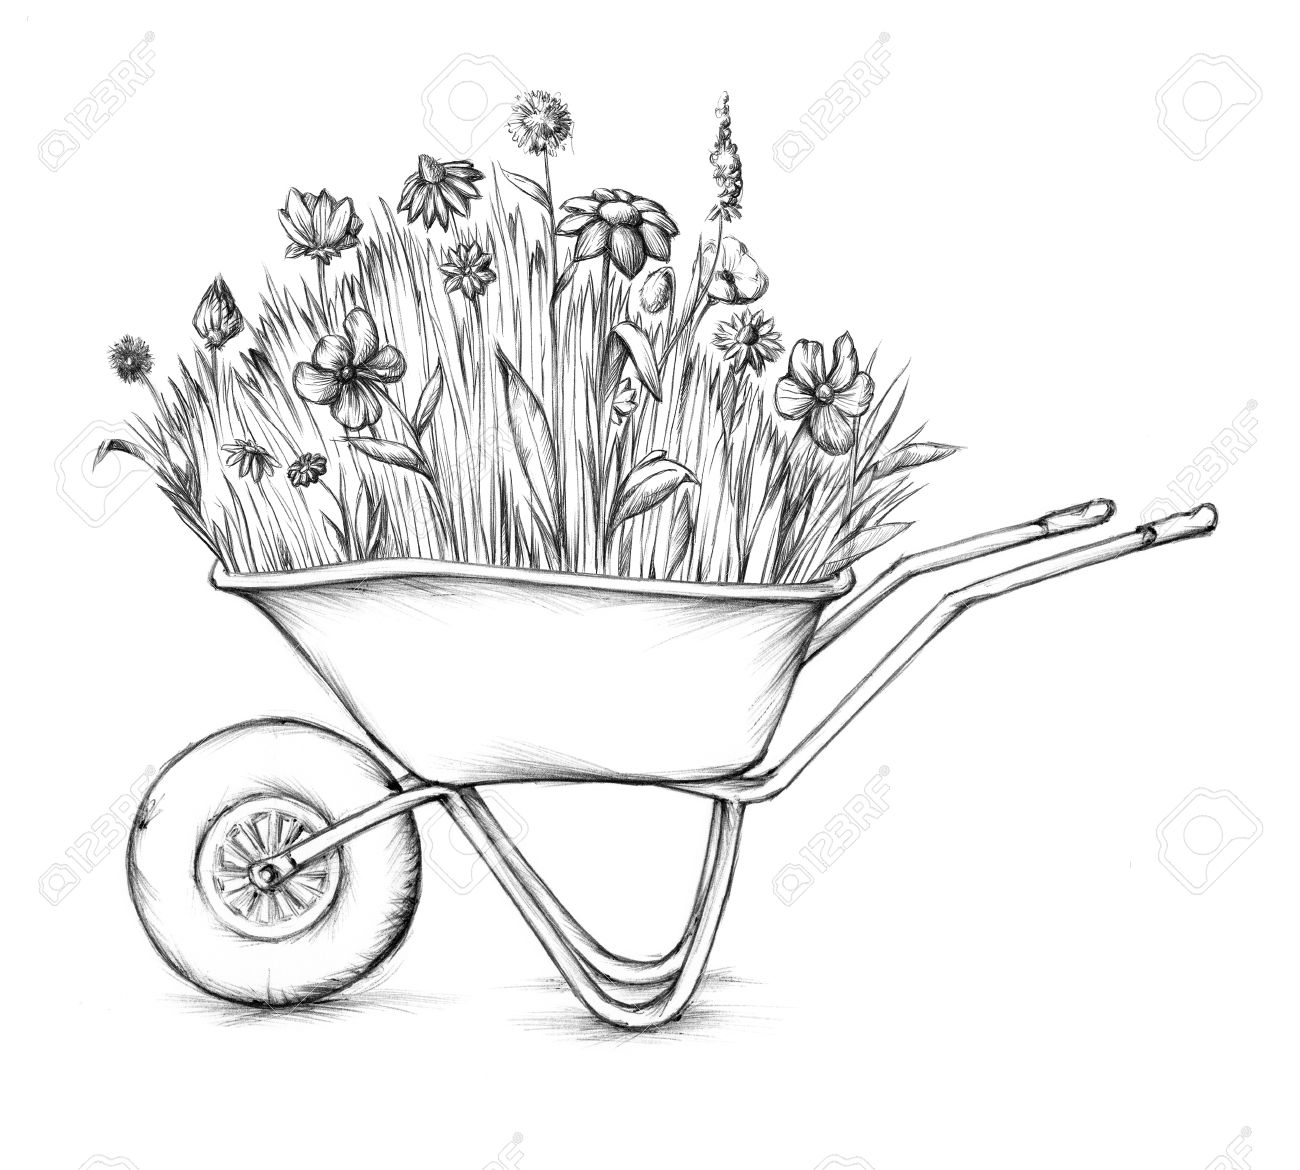 1300x1170 Illustration Of A Flower Meadow In A Wheelbarrow Stock Photo